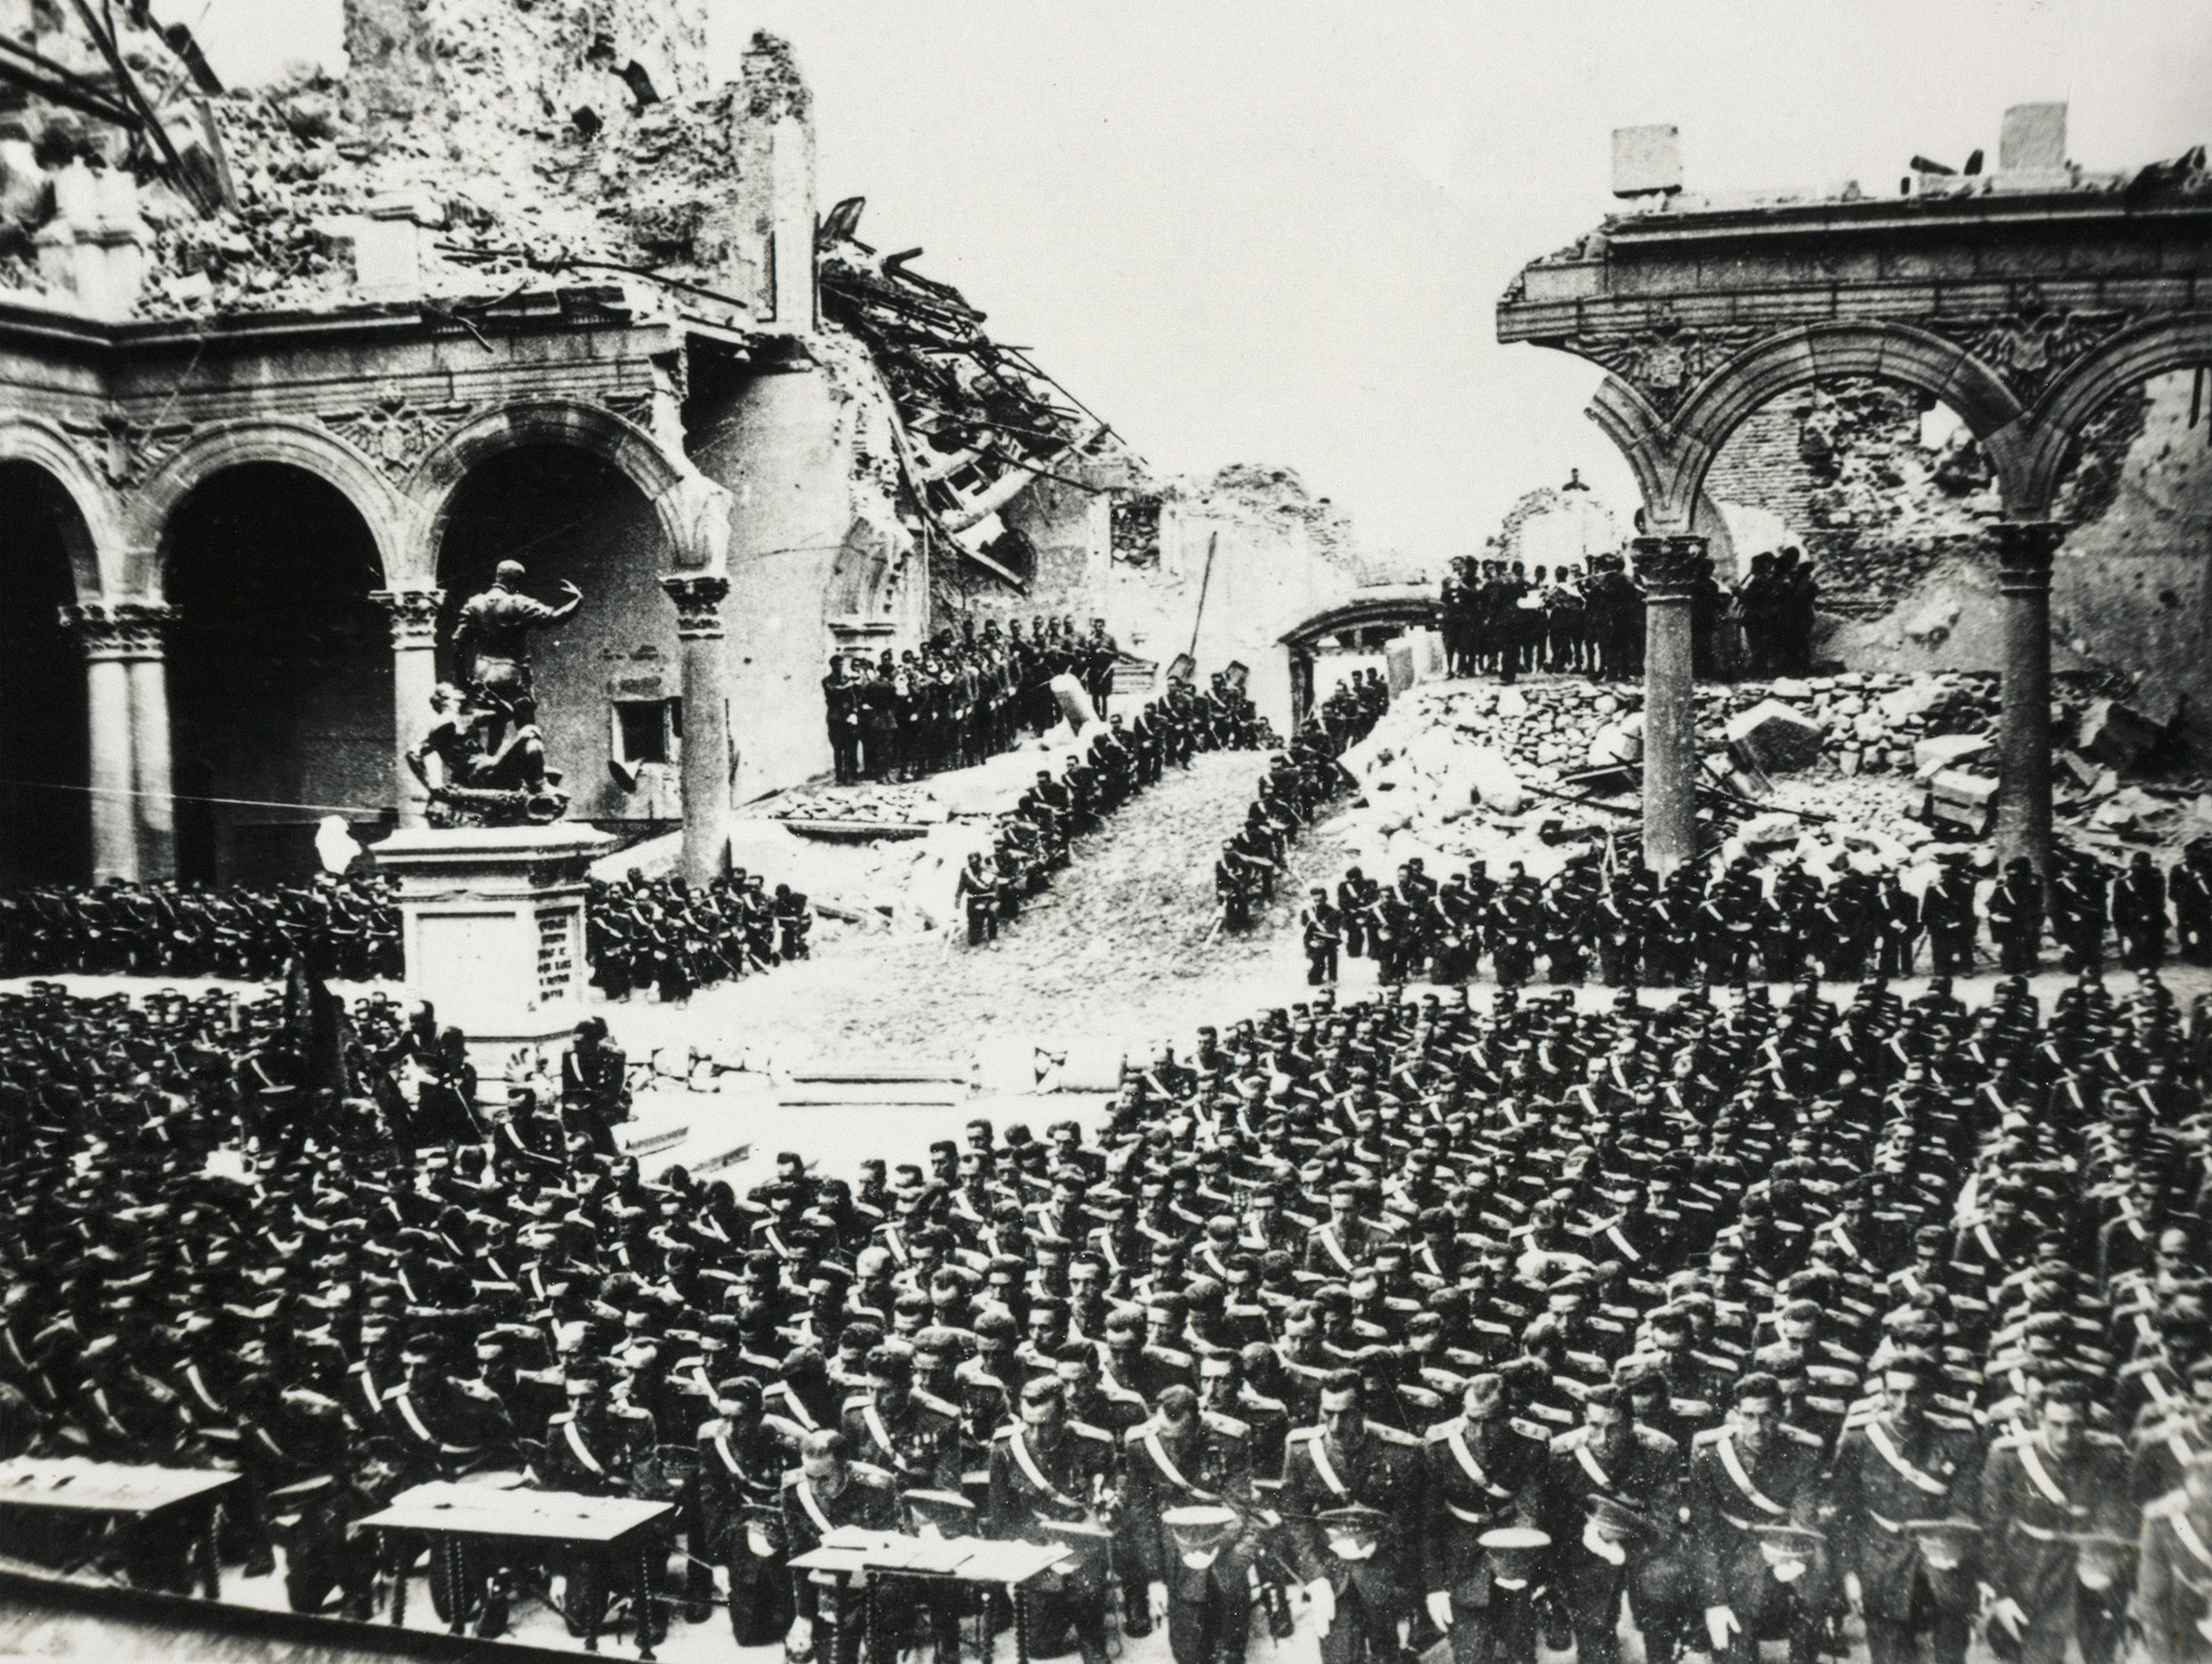 Cadets from the Francoist army swearing allegiance in the Alcazar in Toledo, Spain, after it was destroyed by bombing, in 1937.